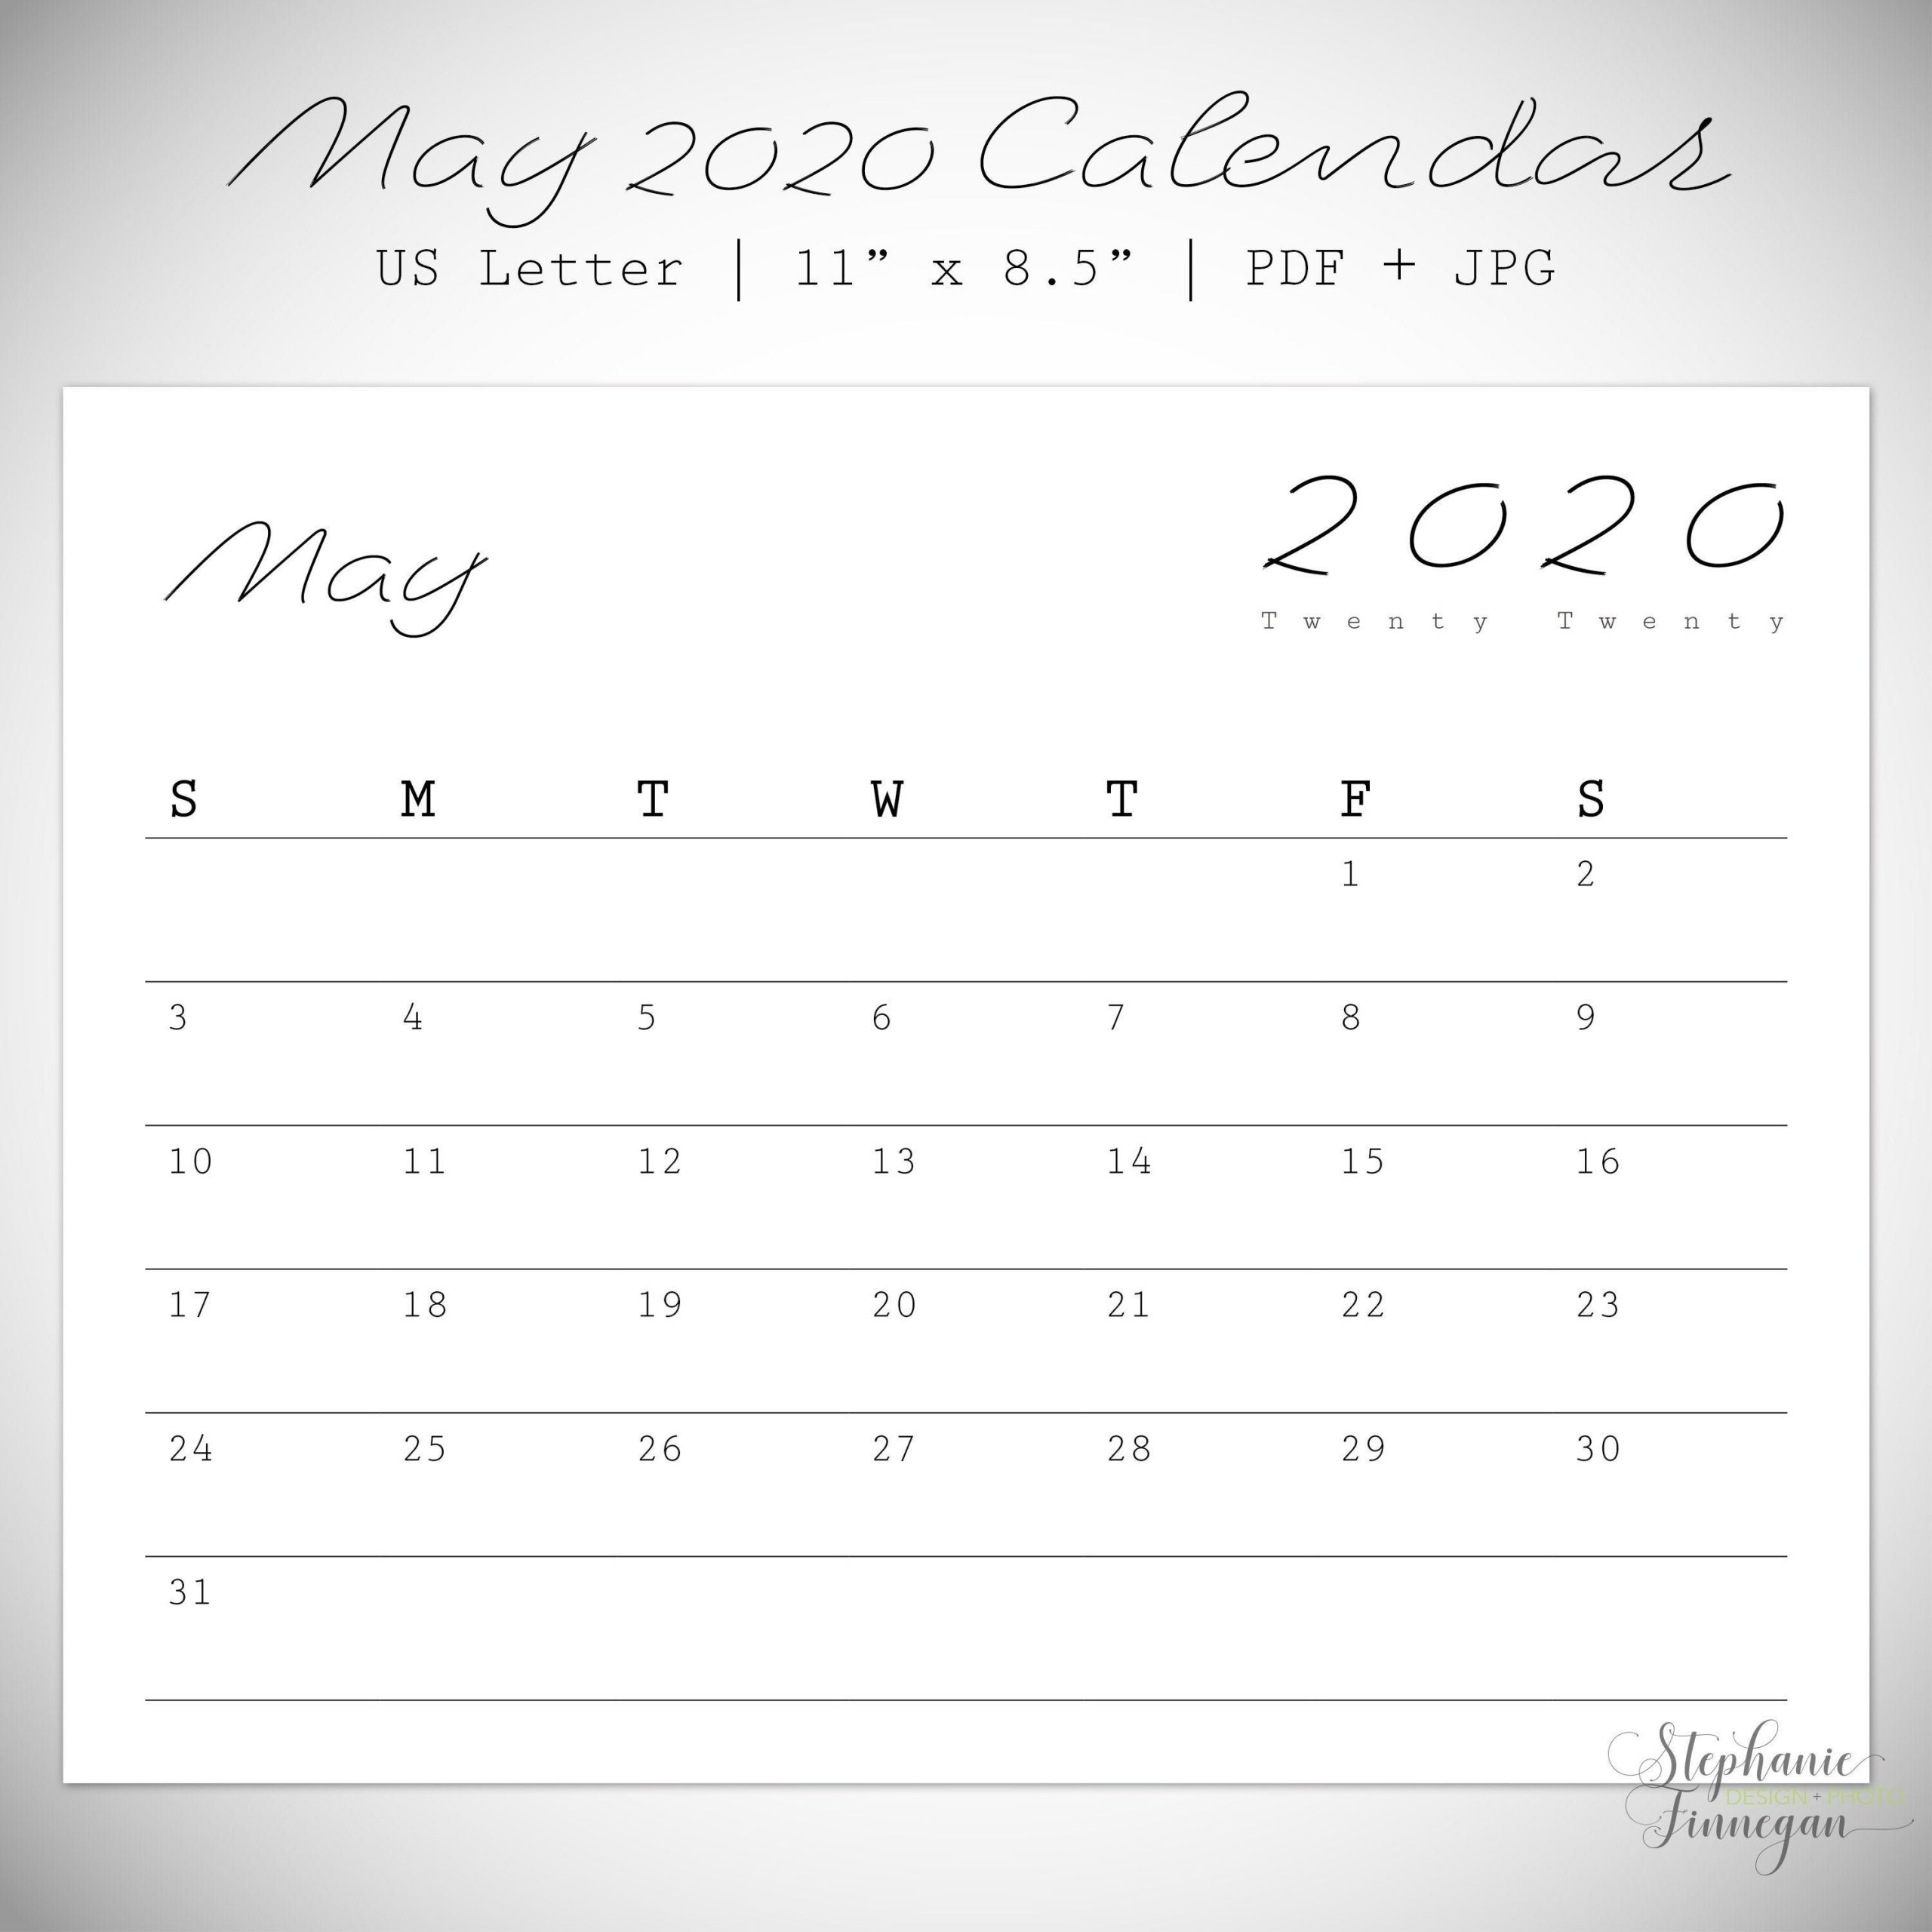 May 2020 Calendar   Printable   Letter Size   Monthly Calendar   May   2020   Print Calendar In